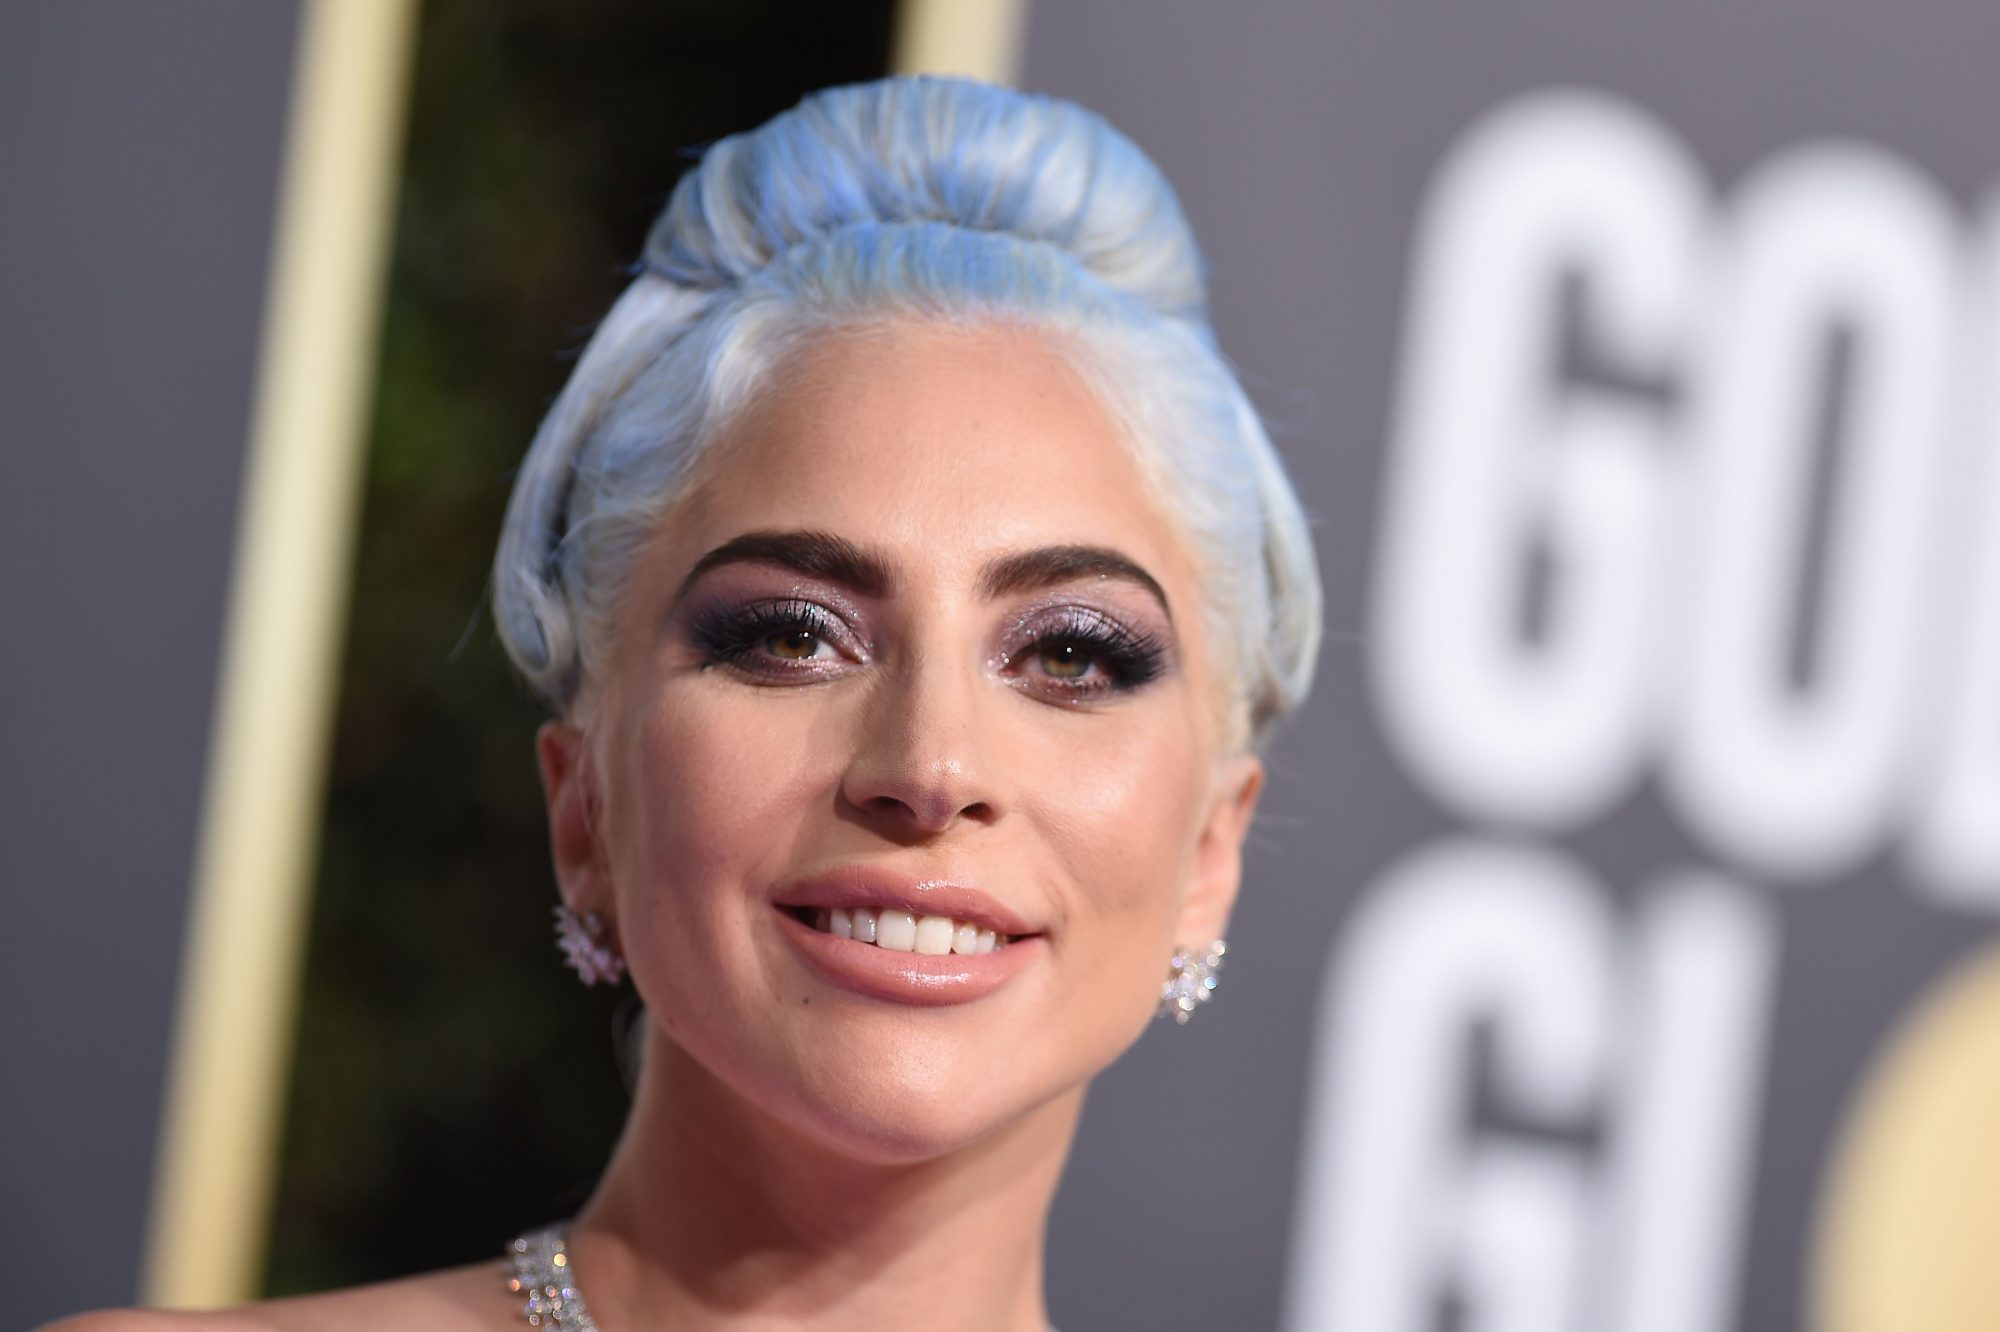 Lady Gaga wears over 100 carats of diamonds to the Golden Globes